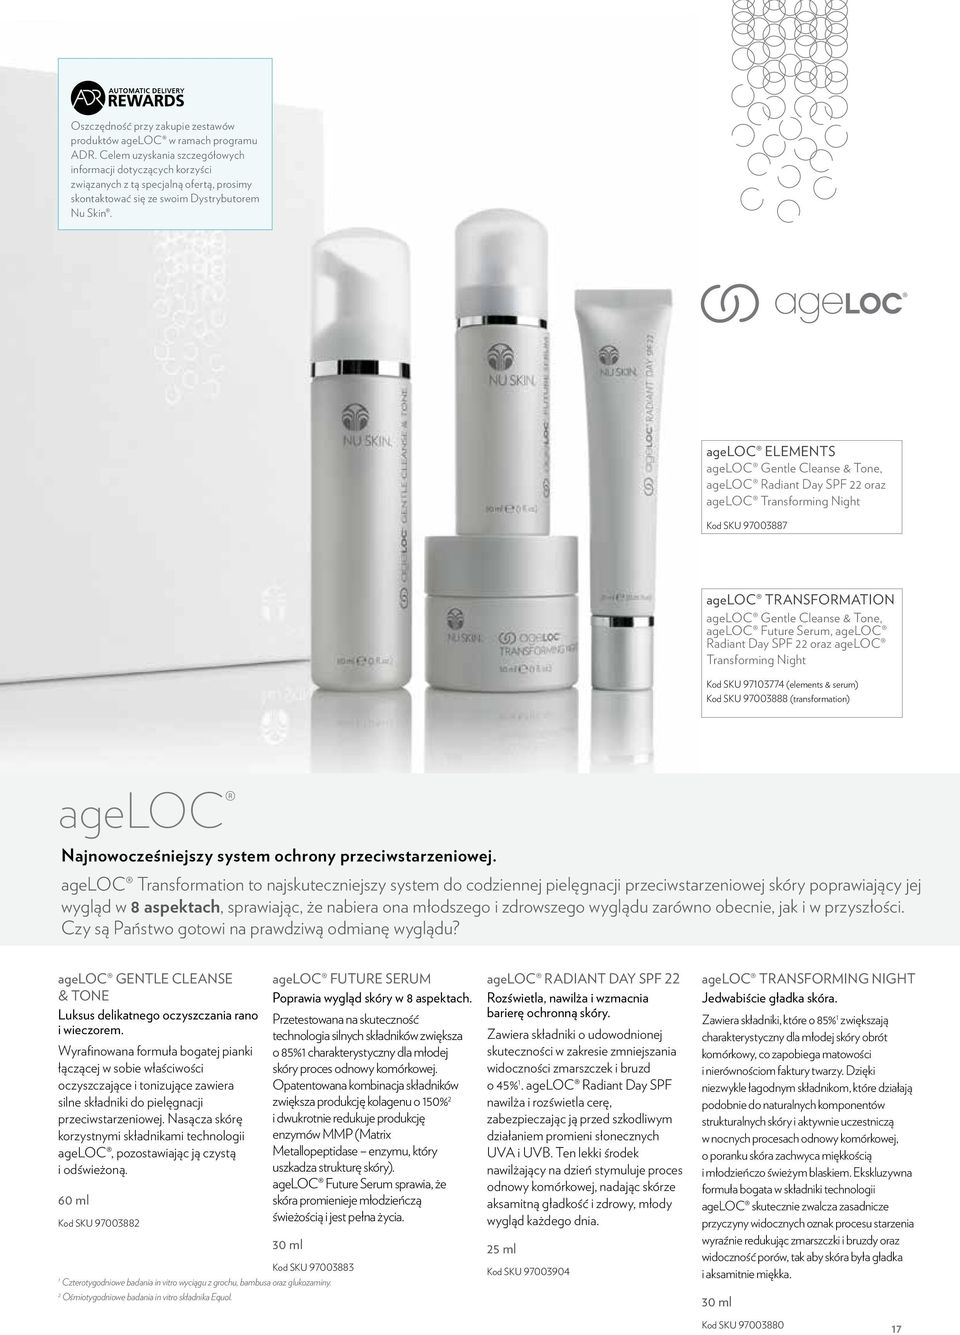 ageloc ELEMENTS ageloc Gentle Cleanse & Tone, ageloc Radiant Day SPF 22 oraz ageloc Transforming Night Kod SKU 97003887 ageloc transformation ageloc Gentle Cleanse & Tone, ageloc Future Serum, ageloc